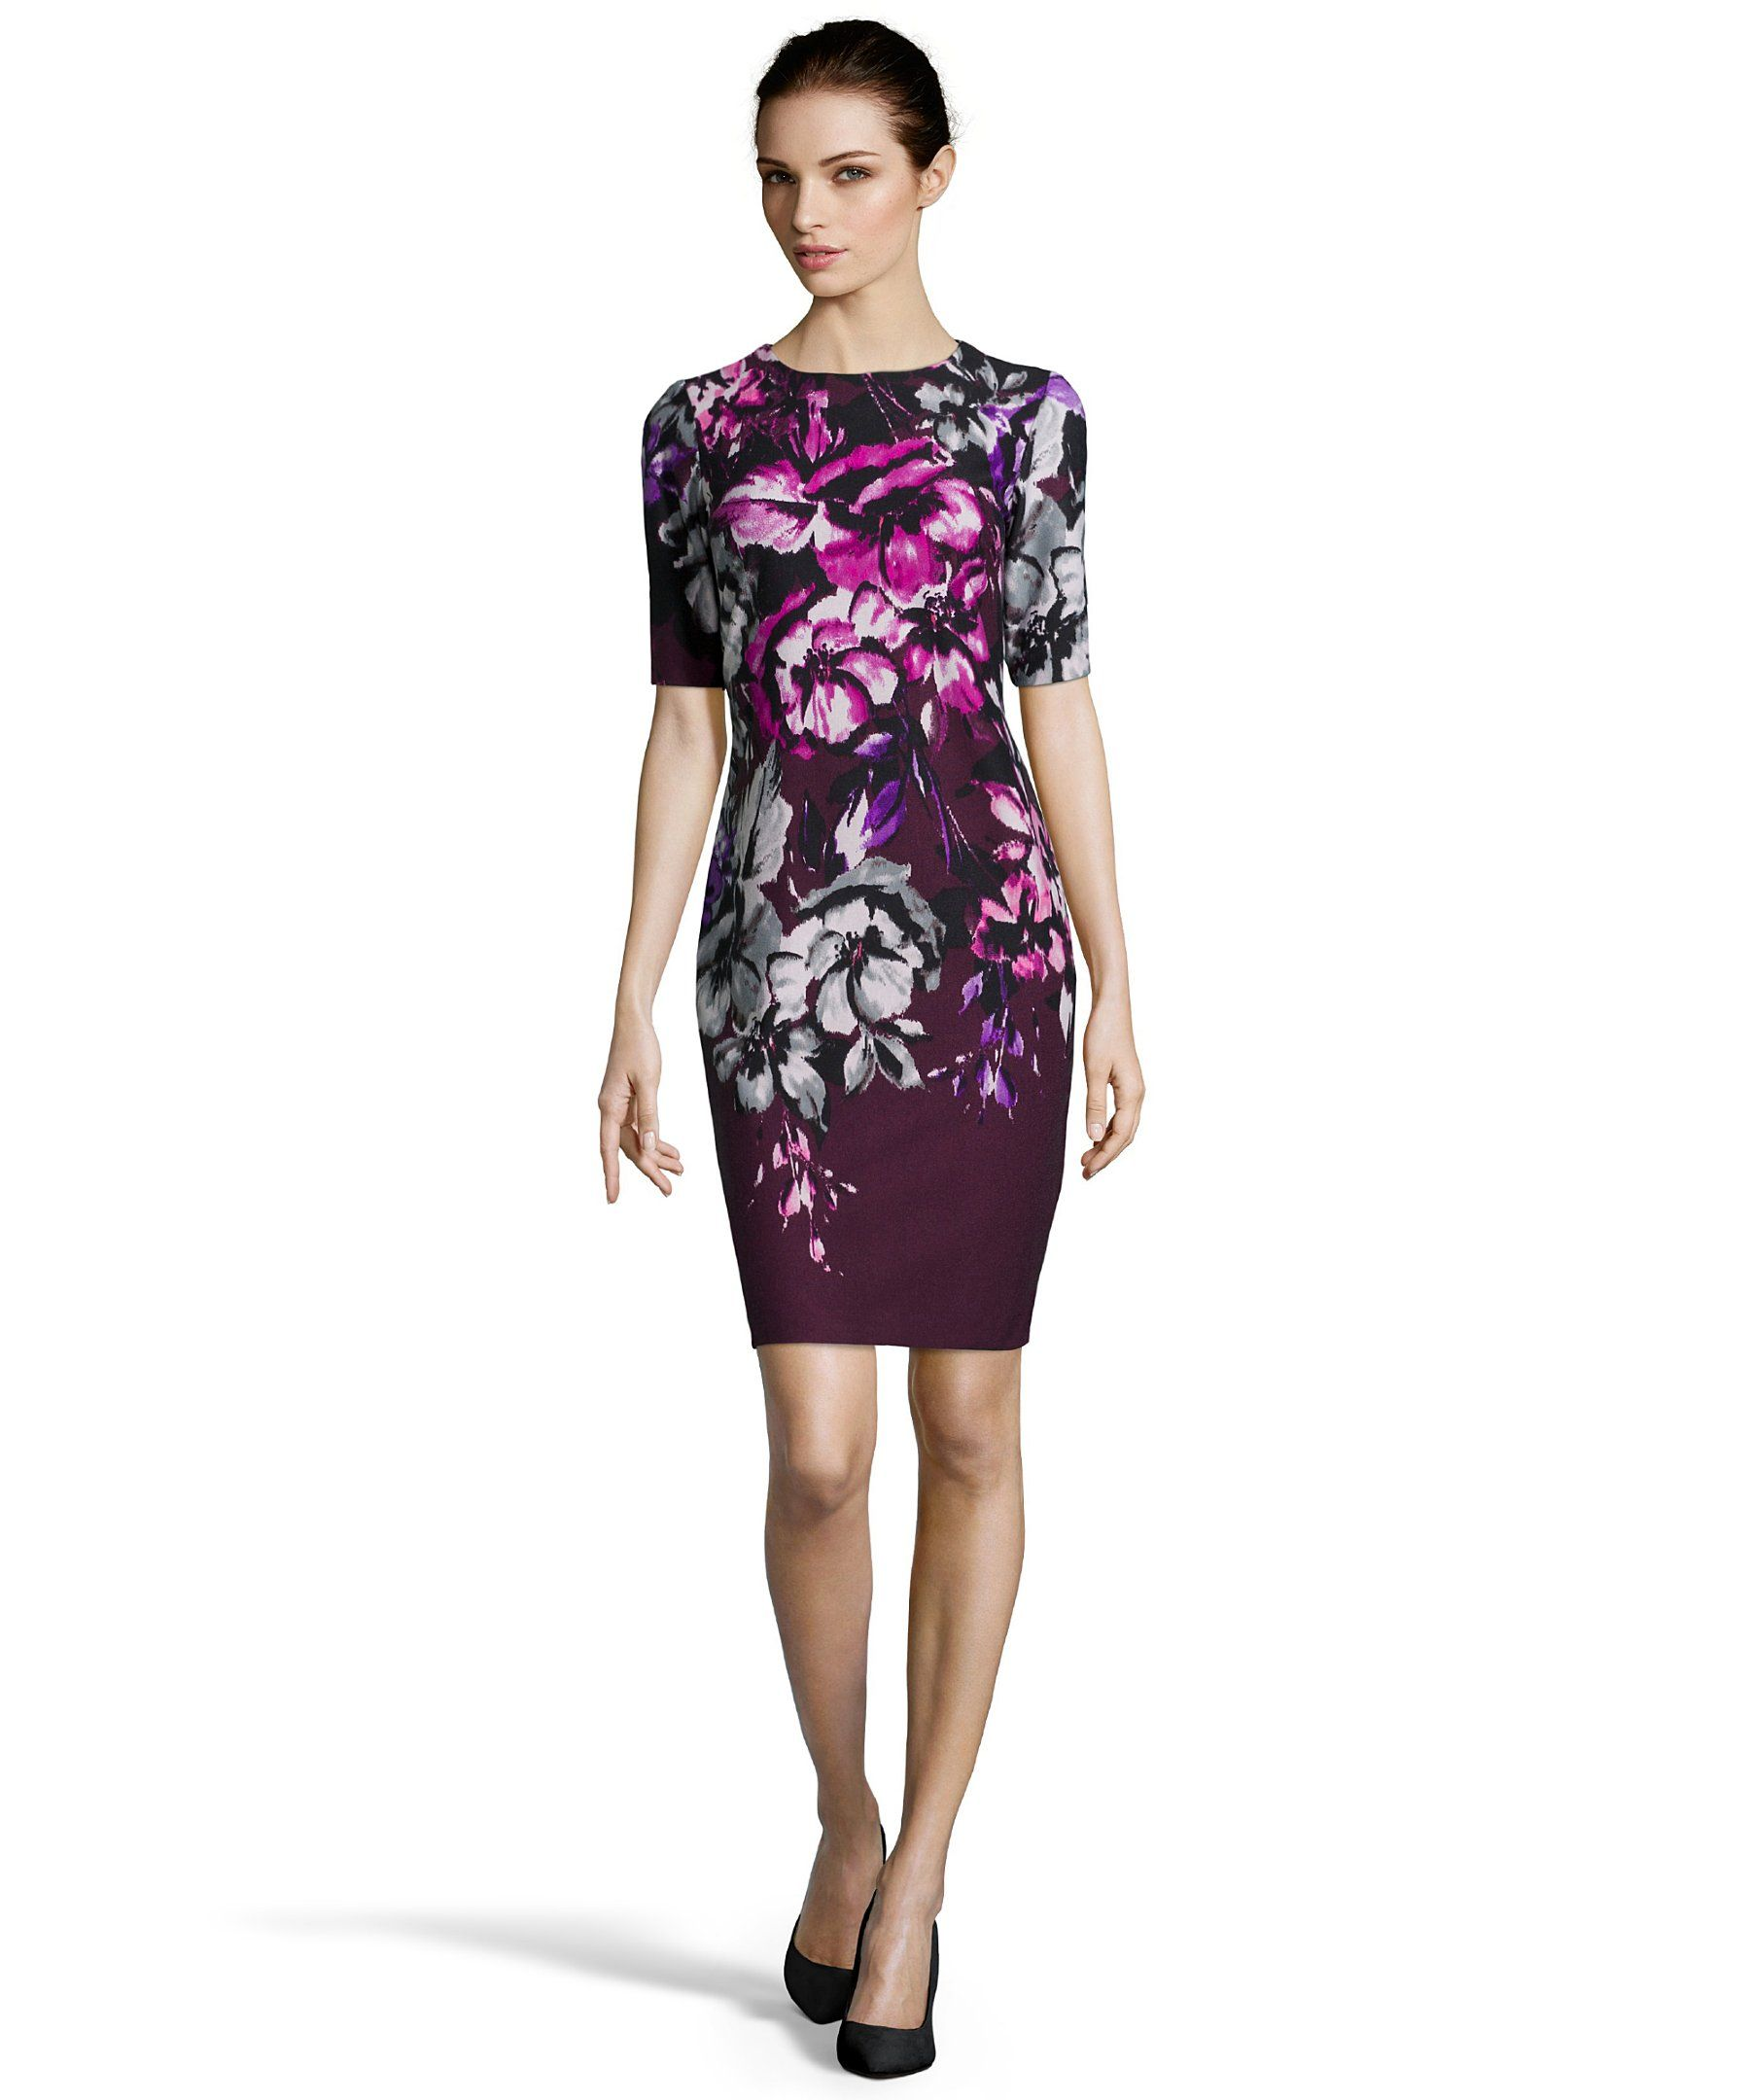 Taylor sheath dress stretches floral and printing